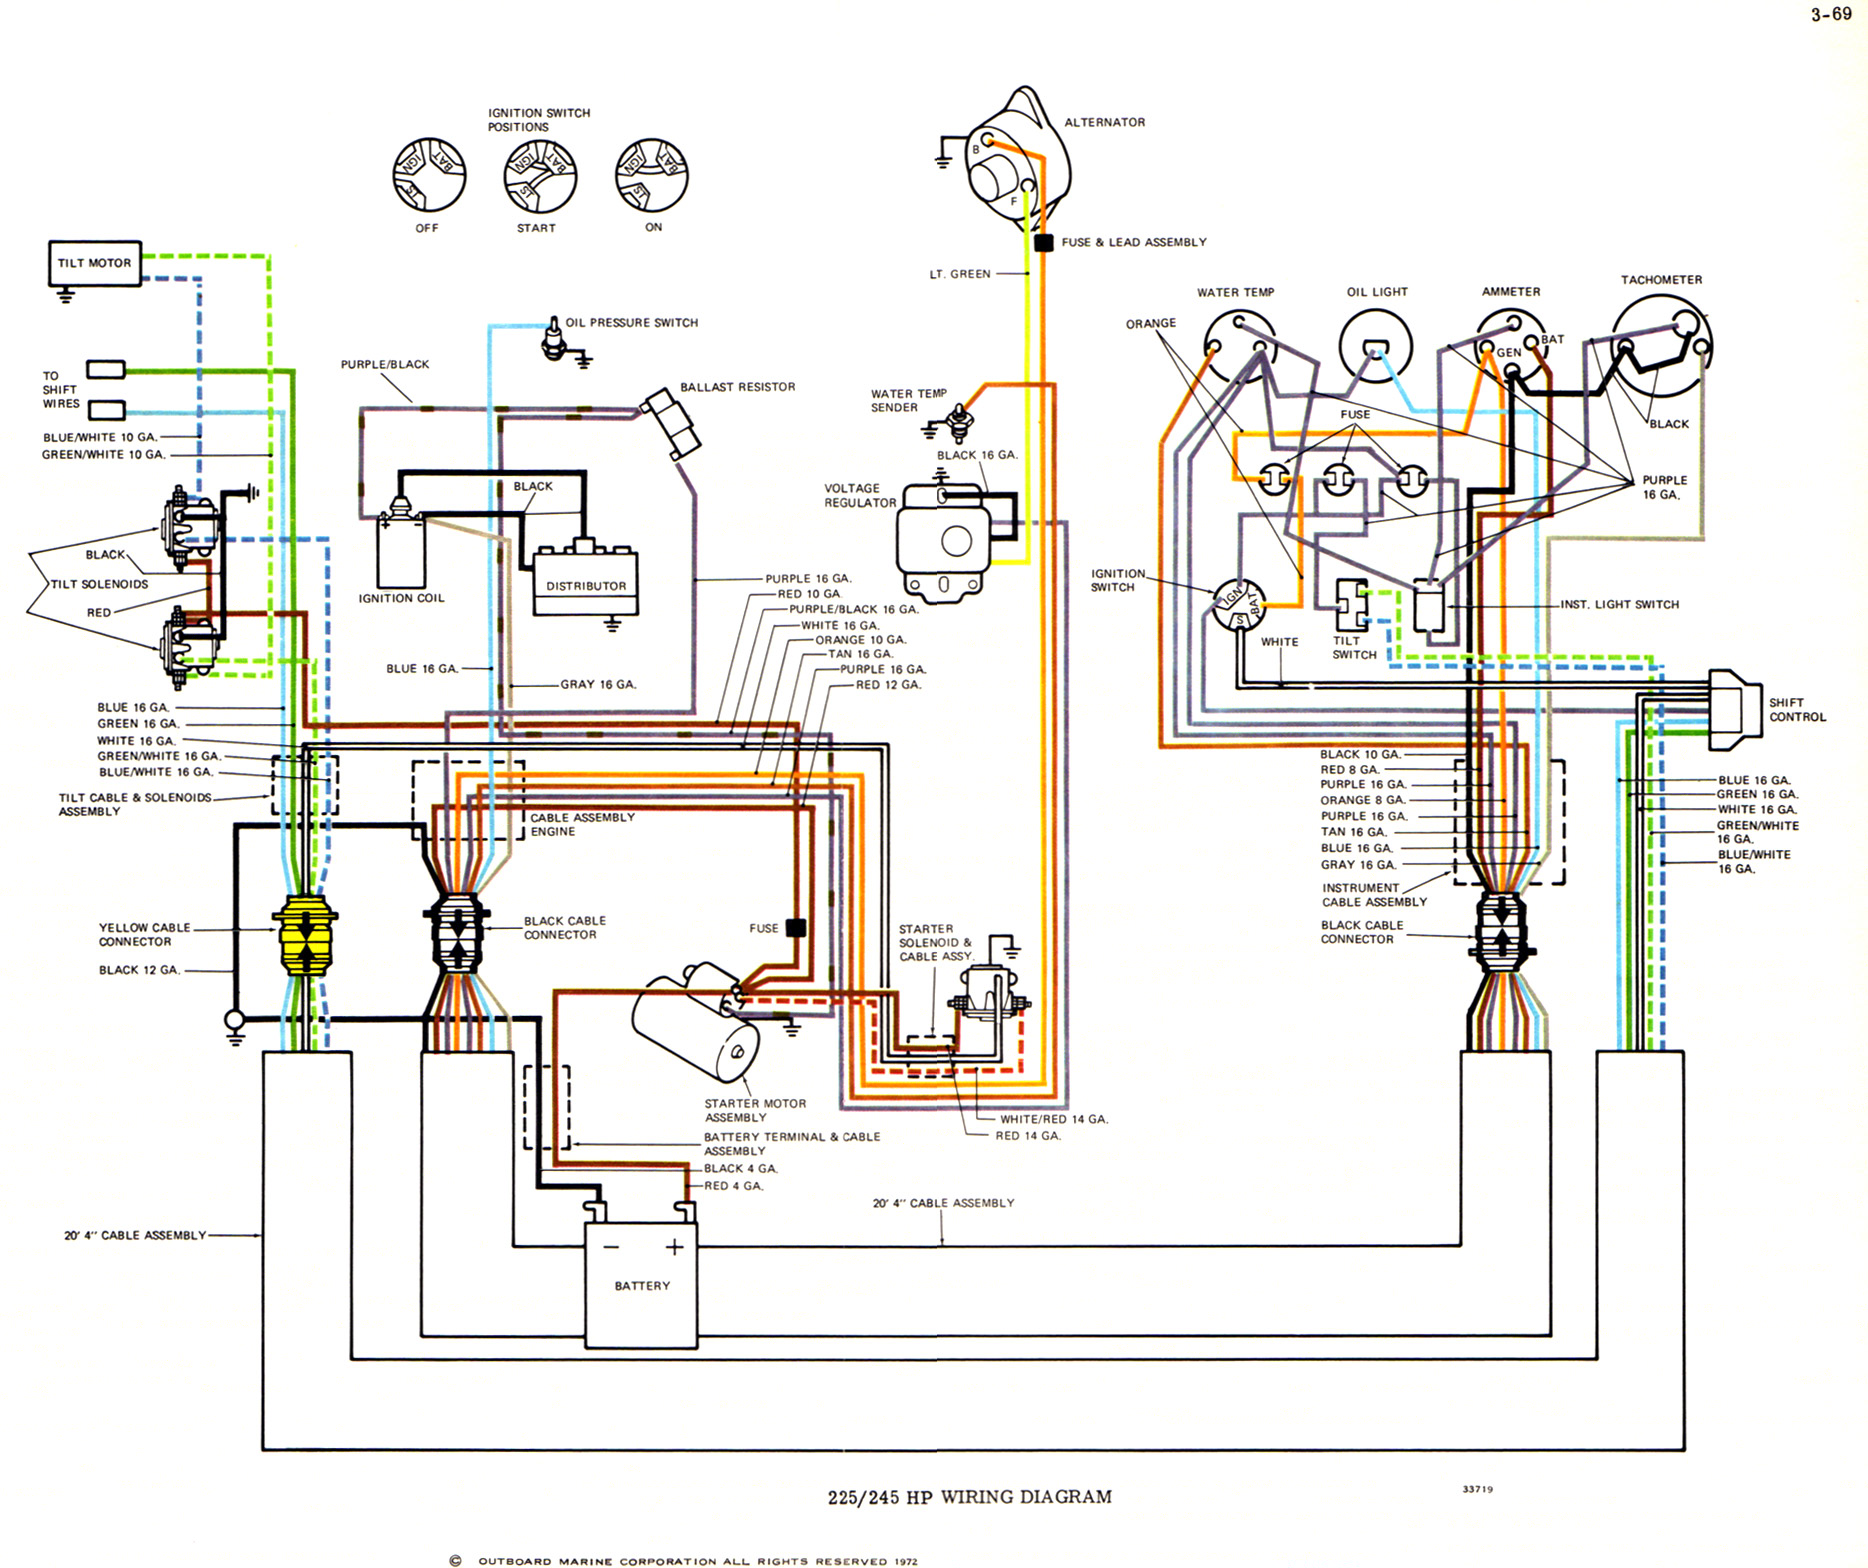 73_OMC_V8_all_big yamaha outboard motor wiring diagrams the wiring diagram mercury outboard wiring harness color code at suagrazia.org